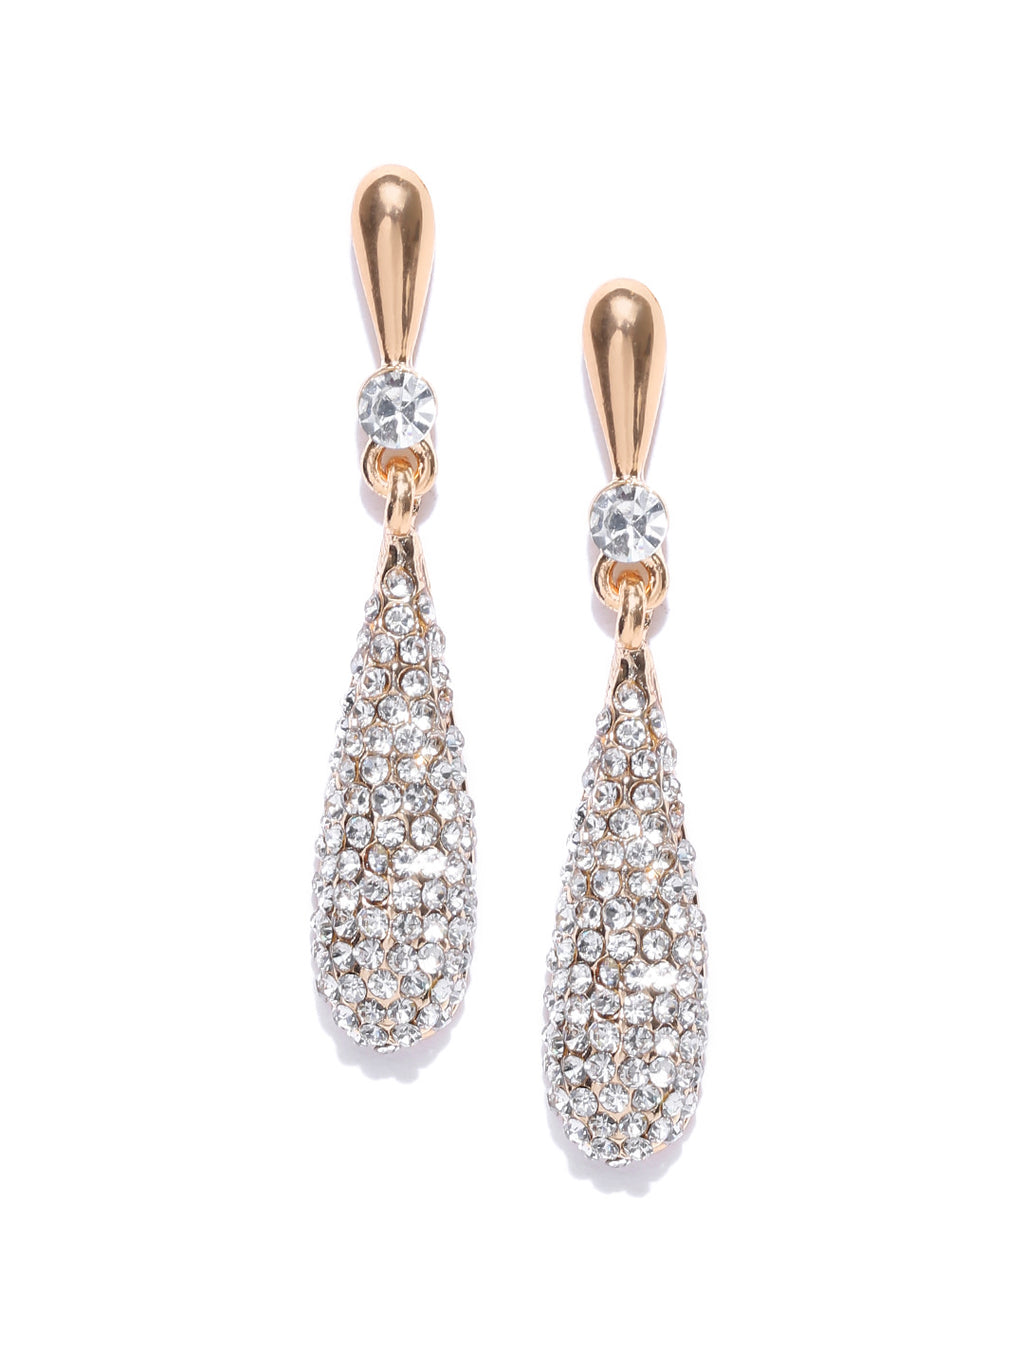 TEARDROP STUDDED DROP EARRINGS